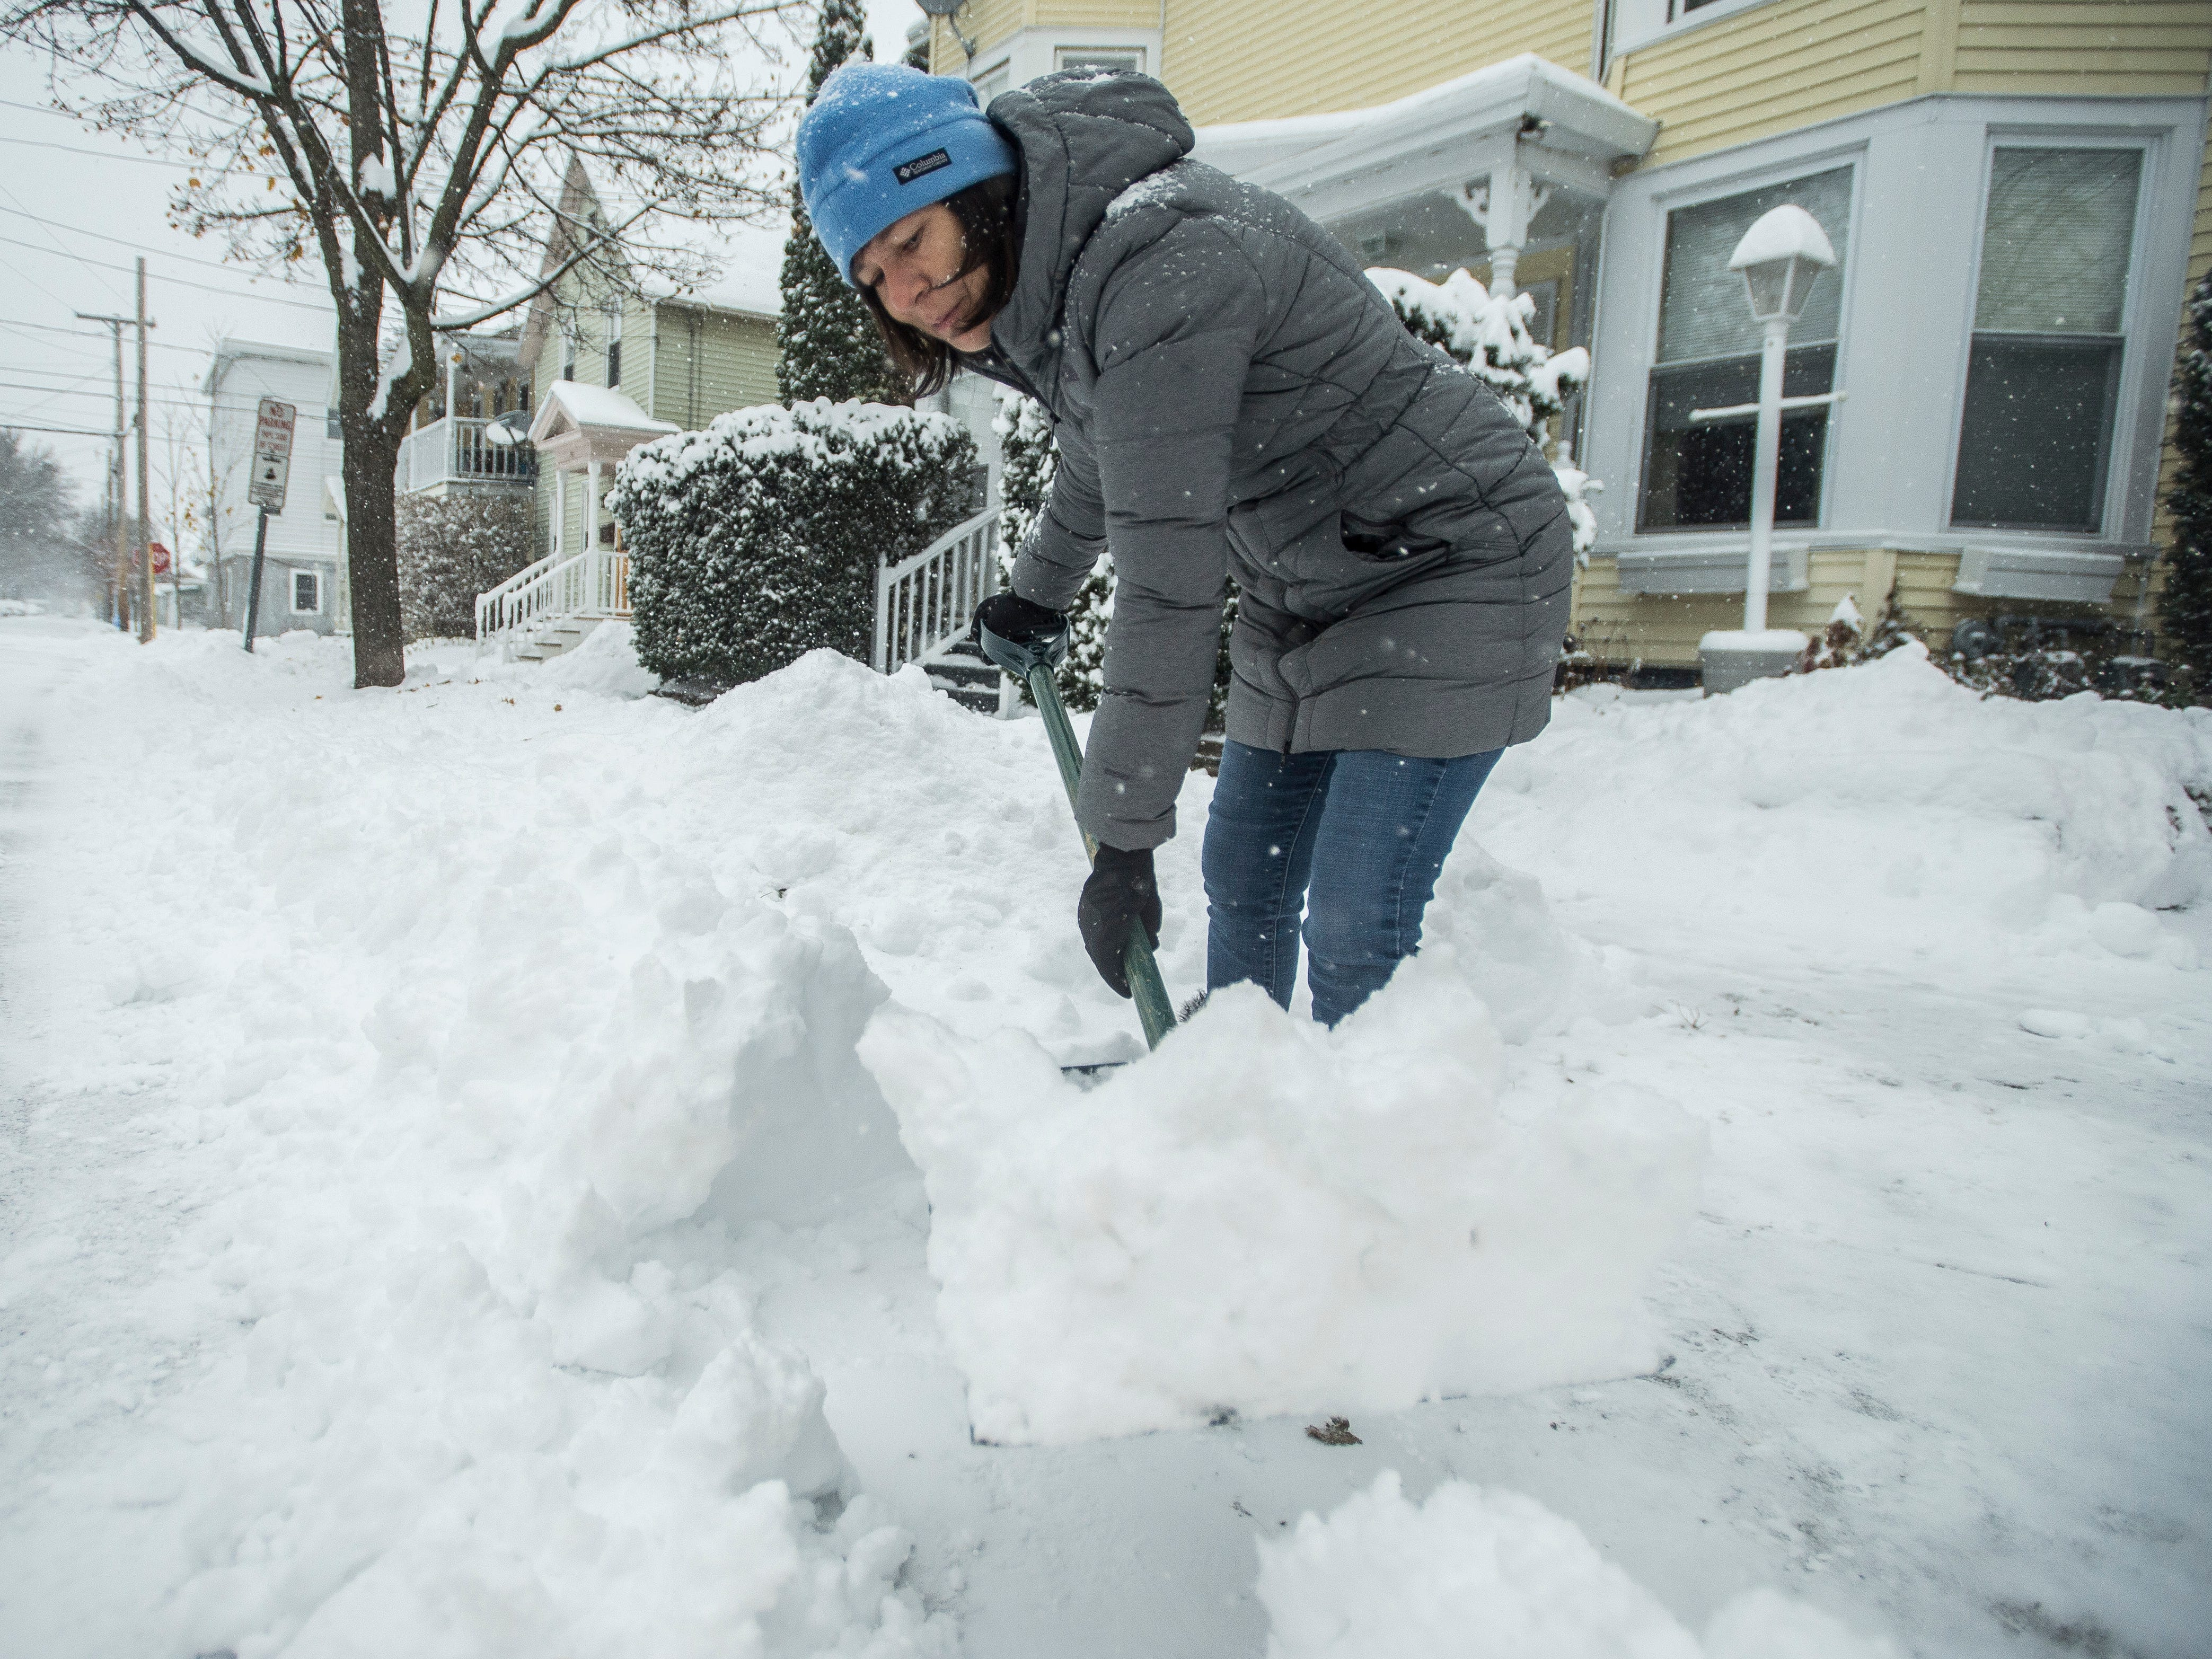 Charmaine Vincent shovels out her driveway in Burlington, Vt.  Nov. 16, 2018, as a winter storm moved into Vermont, promising up to a foot of snow or more in some areas.